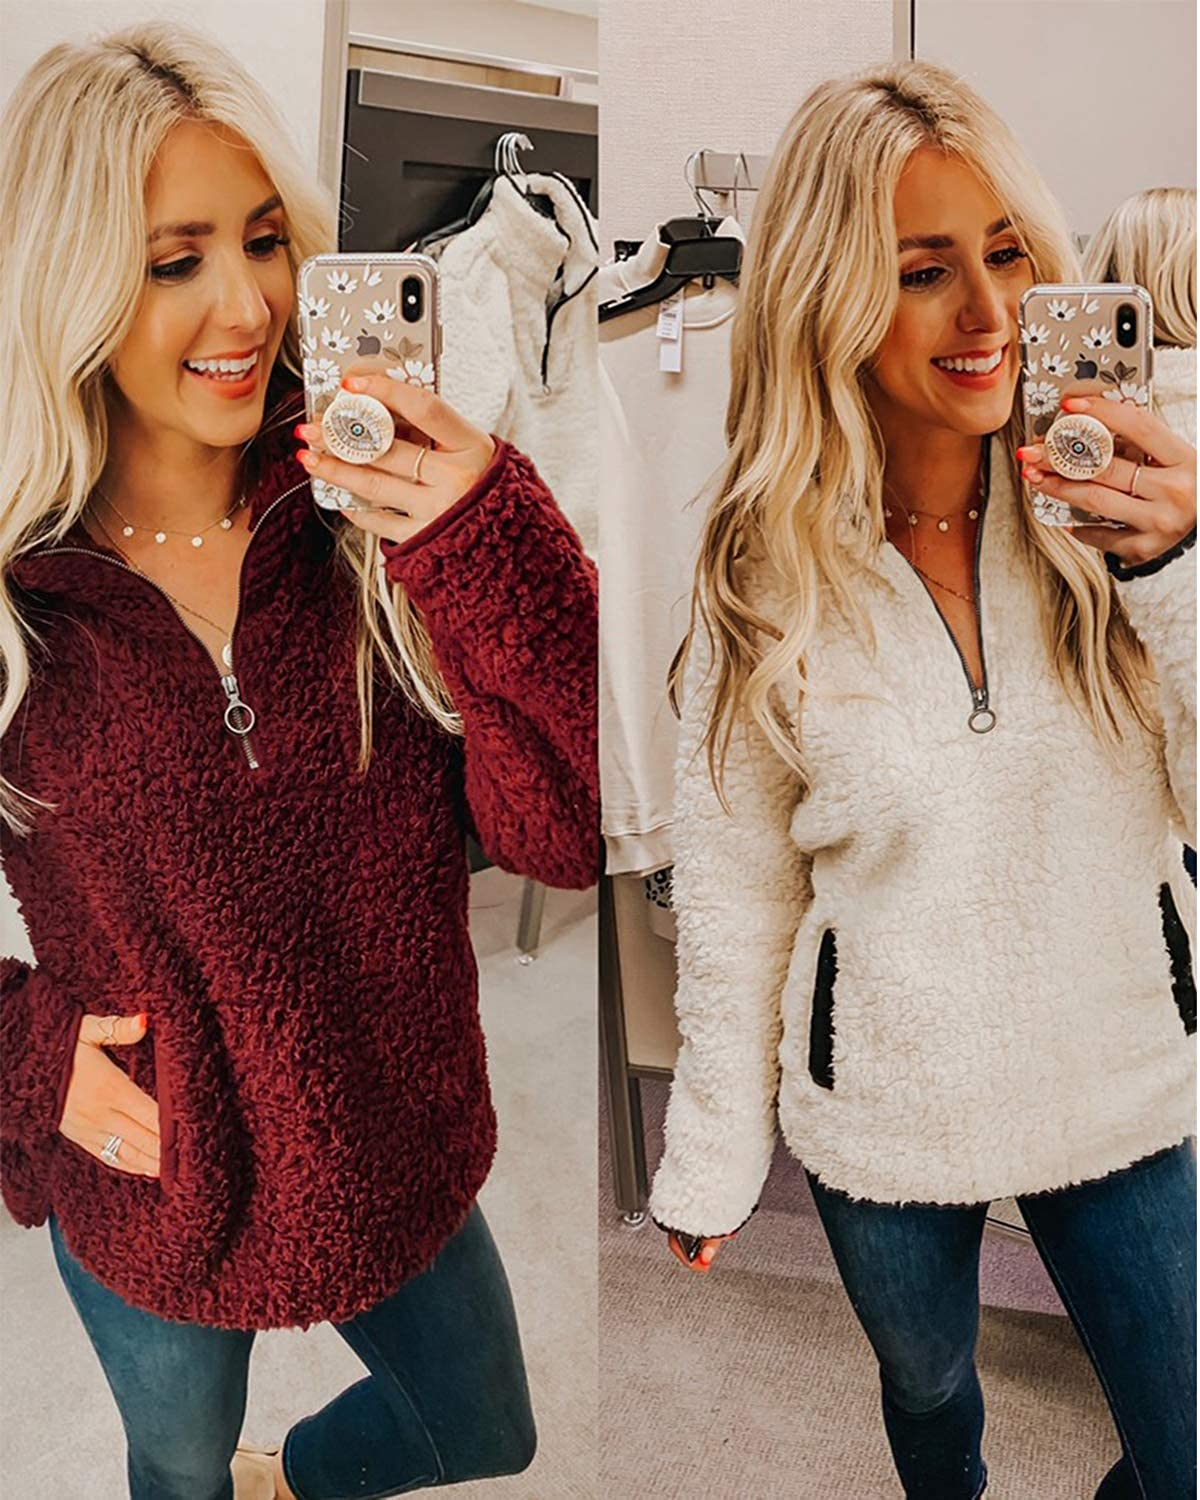 Yidarton Womens Fuzzy Fleece Pullover Casual Zip Up Fluffy Sweatshirt Long Sleeve Stand Collar Cozy Coat Tops with Pockets Wine Red